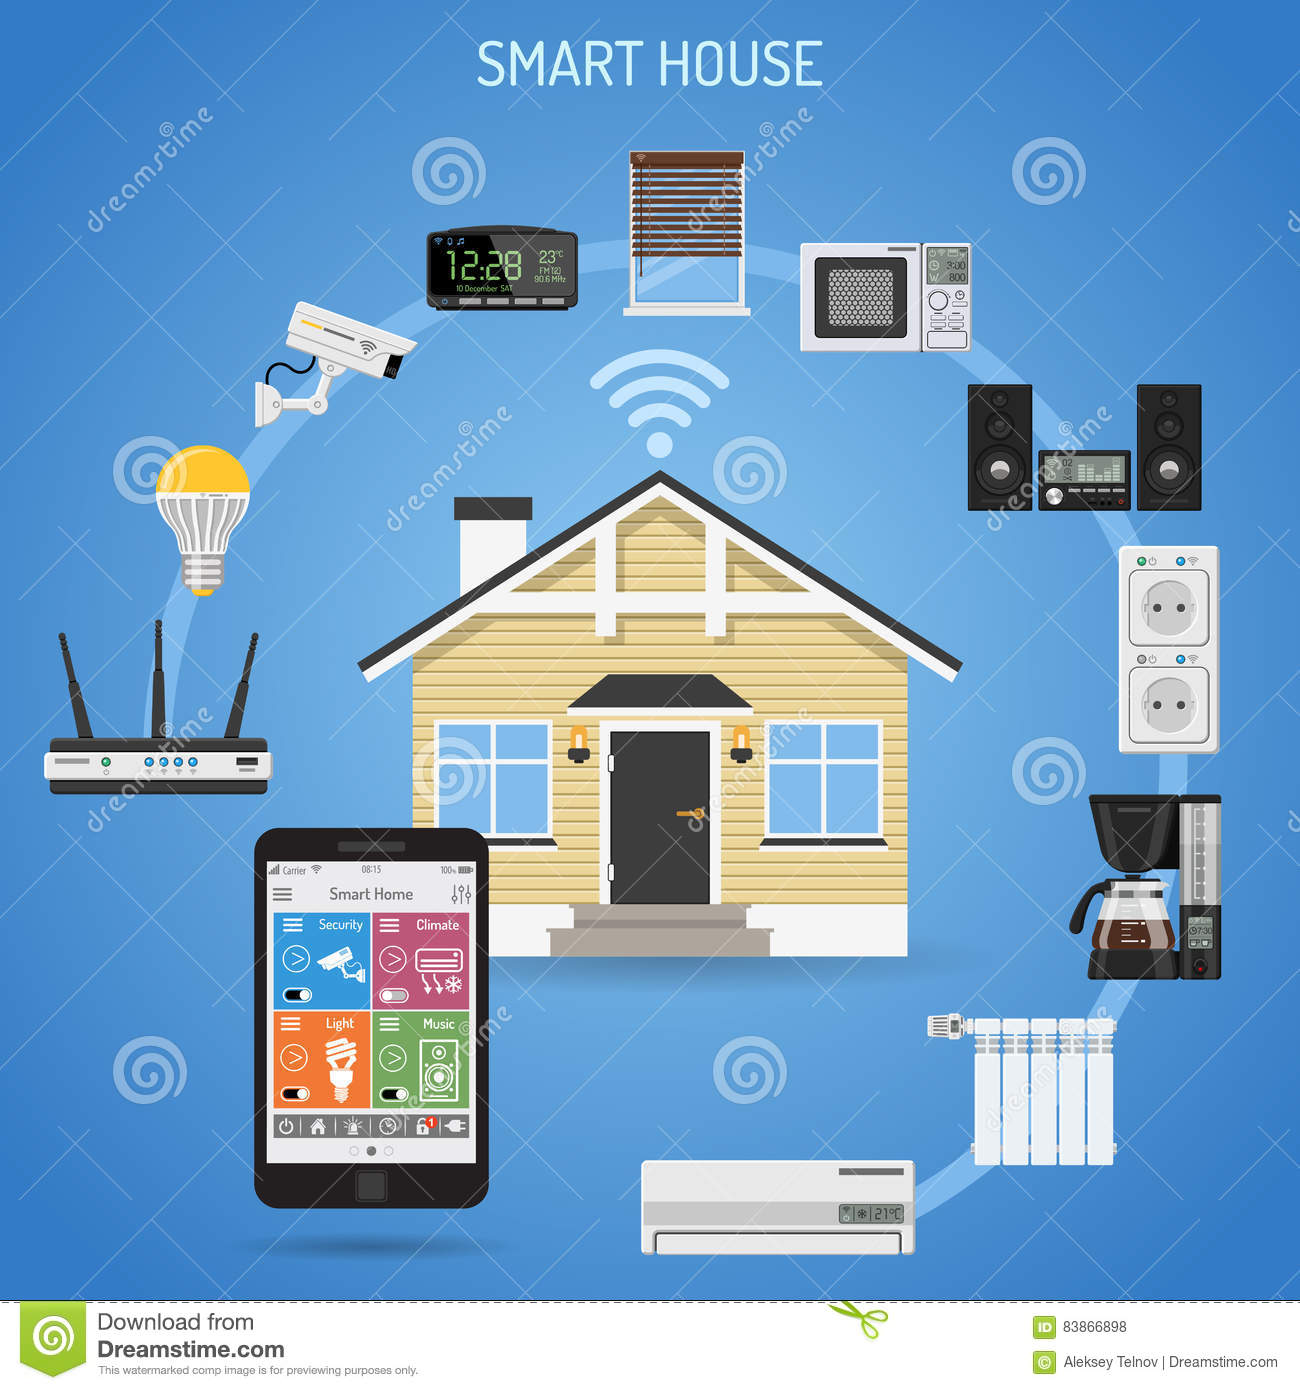 smart house and internet of things cartoon vector